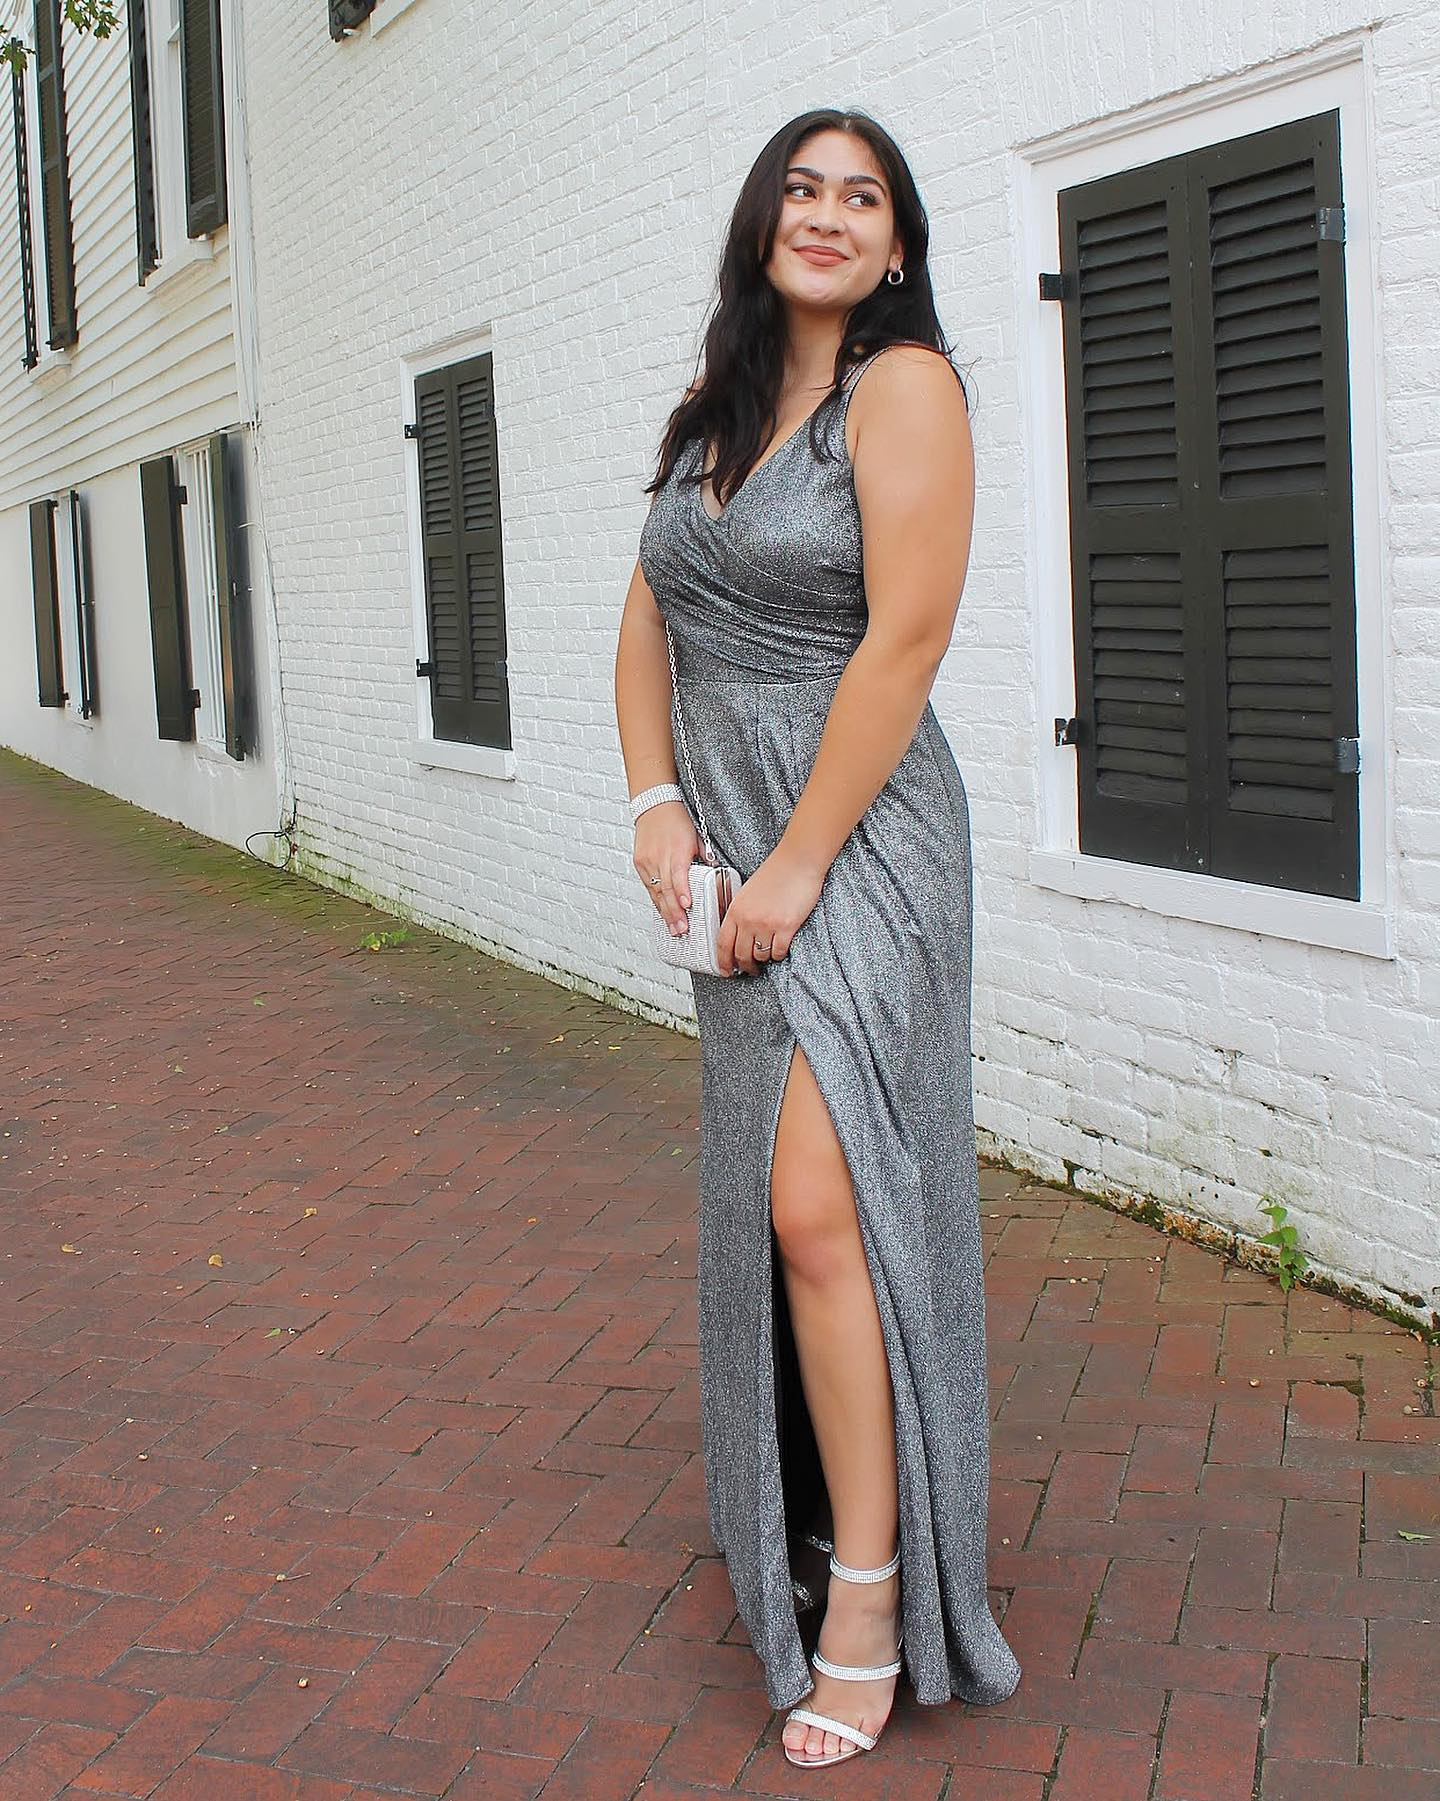 College Ambassador wears long silver David's Bridal dress